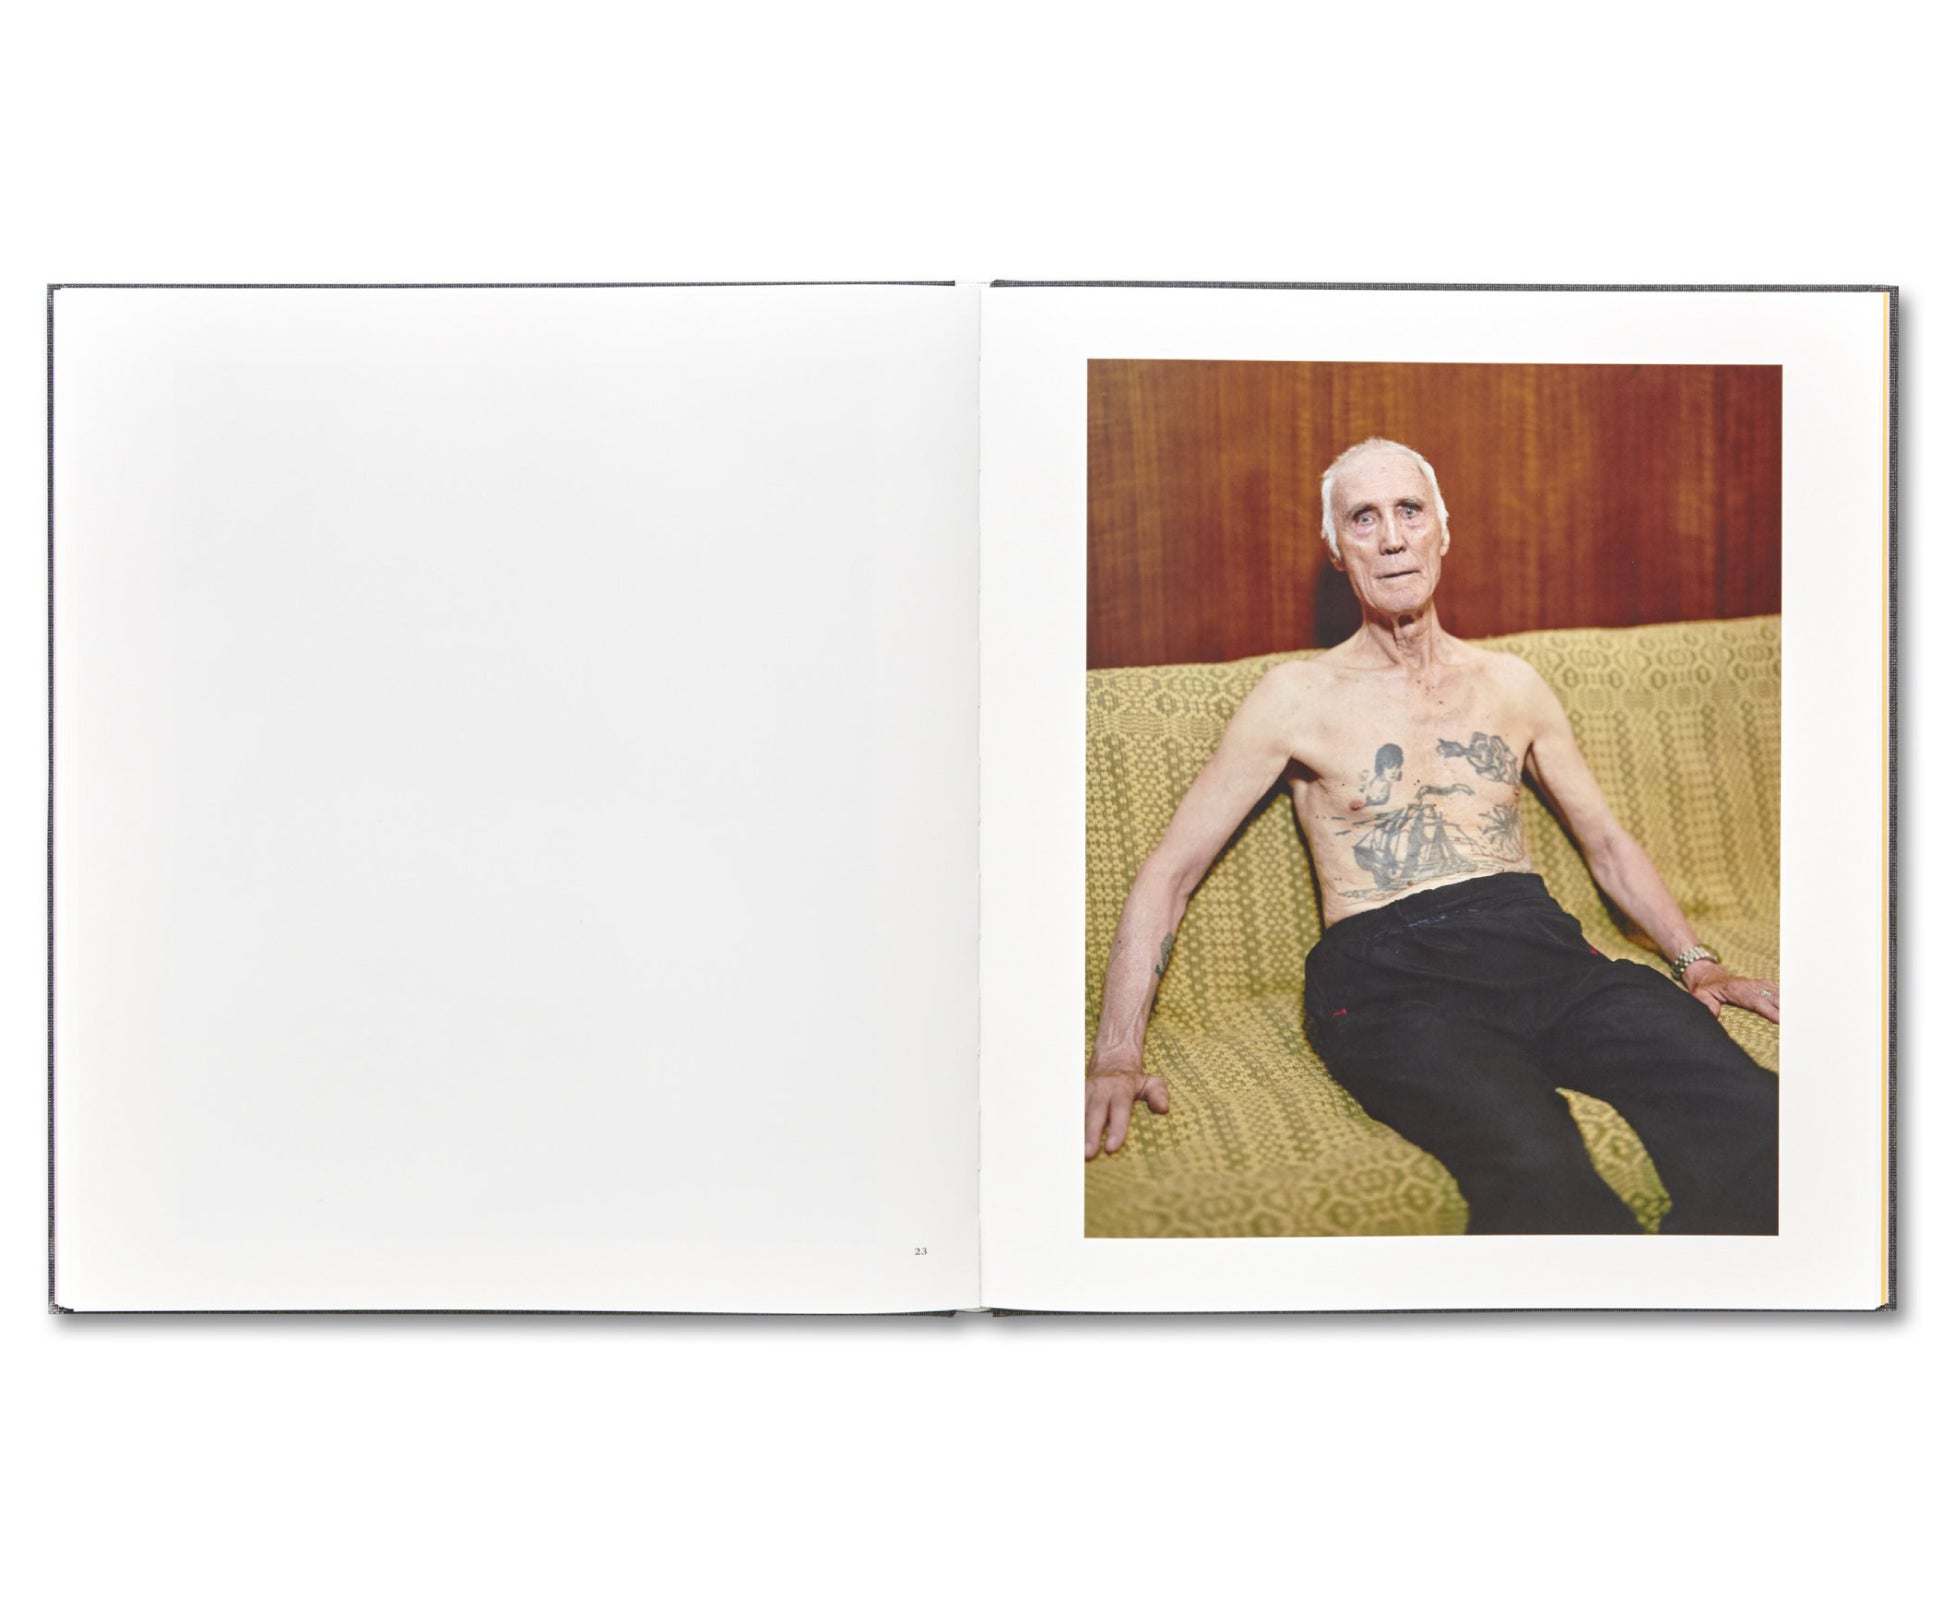 I KNOW HOW FURIOUSLY YOUR HEART IS BEATING by Alec Soth [SIGNED]